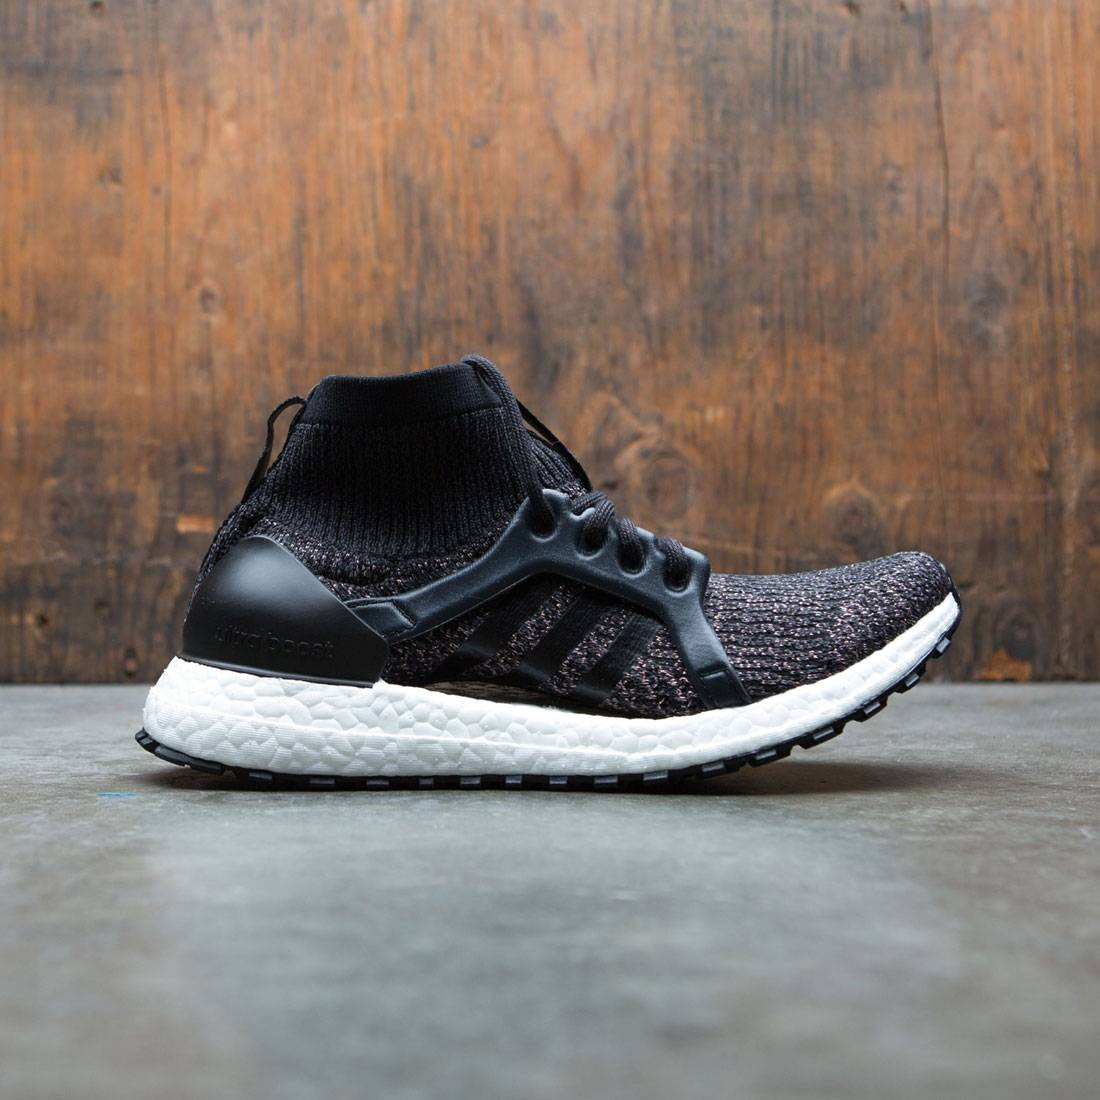 U.k.9.5 Sneaker Adidas Ultra Boost All Terrain Ltd